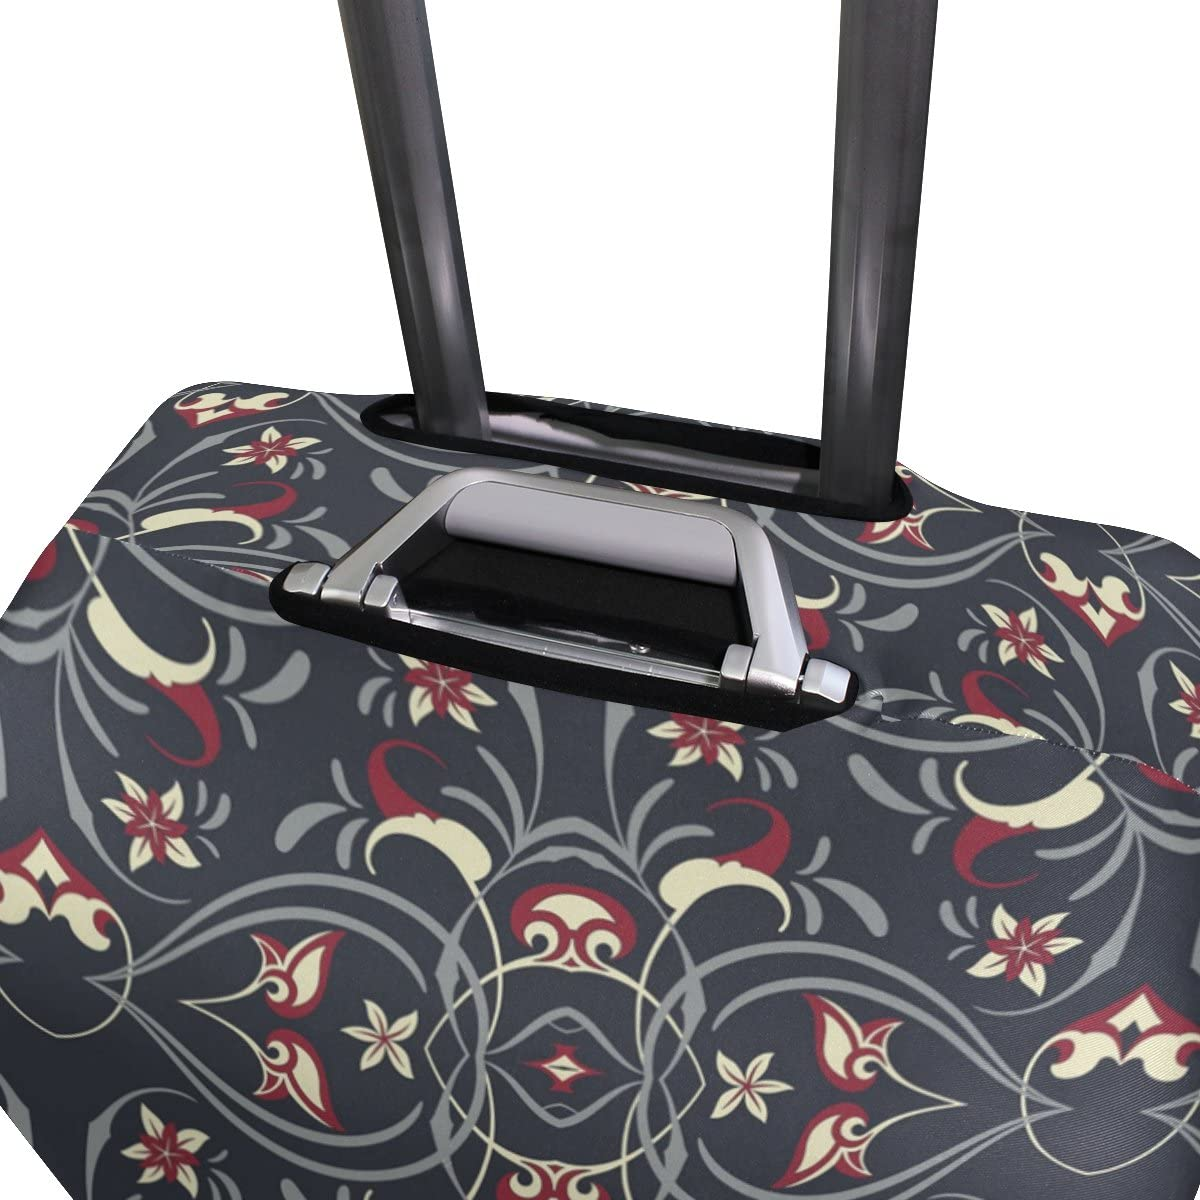 OREZI Luggage Protector Arabic Seamless Pattern Travel Luggage Elastic Cover Suitcase Washable and Durable Anti-Scratch Stretchy Case Cover Fits 18-32 Inches